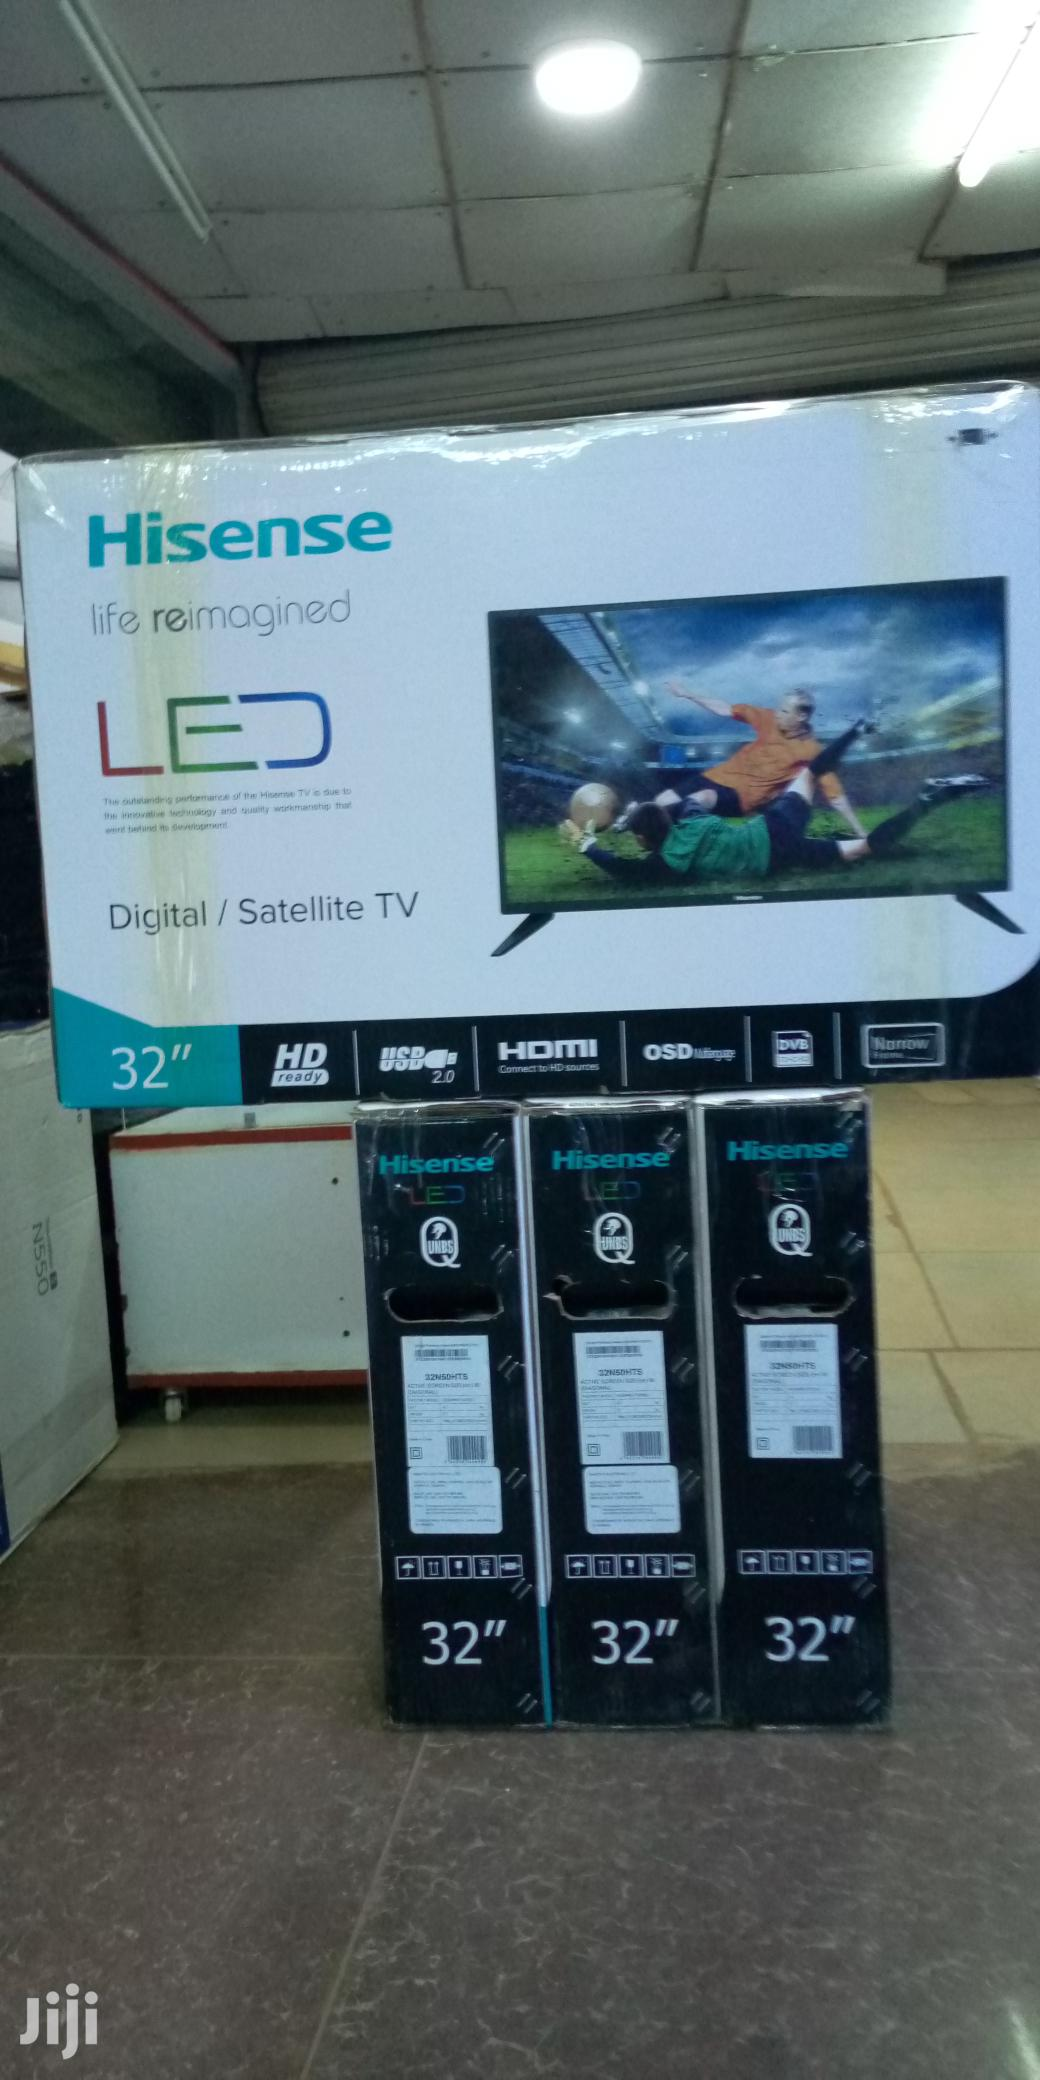 Hisense Digital Satellite Full HD 32''inches Led | TV & DVD Equipment for sale in Kampala, Central Region, Uganda